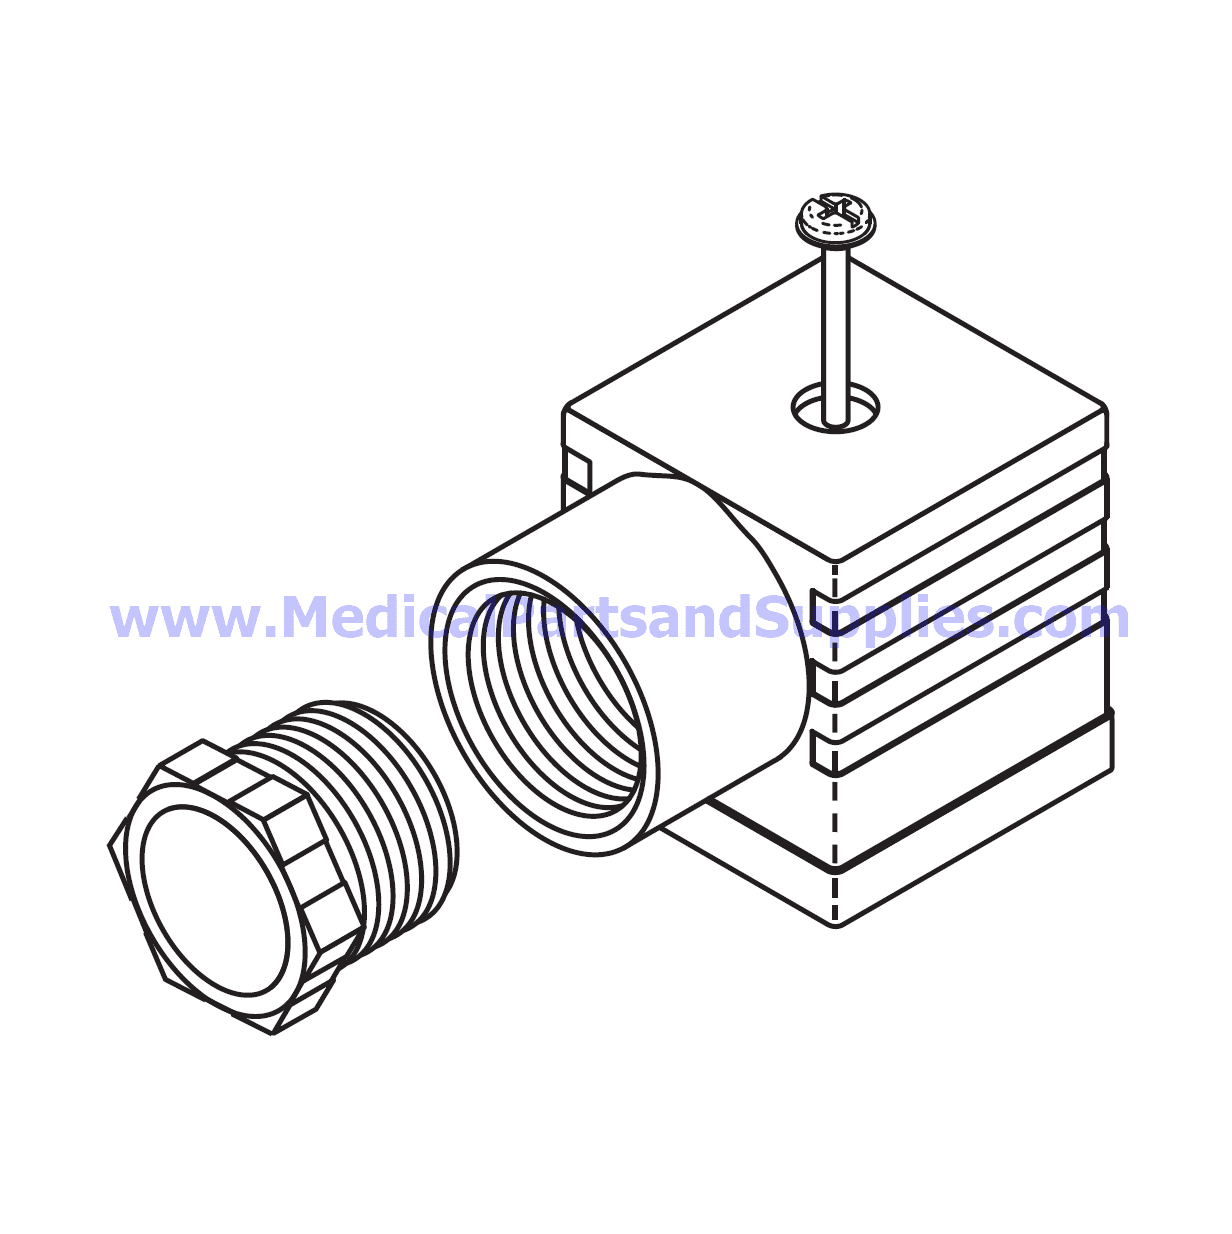 Wire Connector With Gasket For The Tuttnauer Ez10 Part Tuc084 Oem Parts And